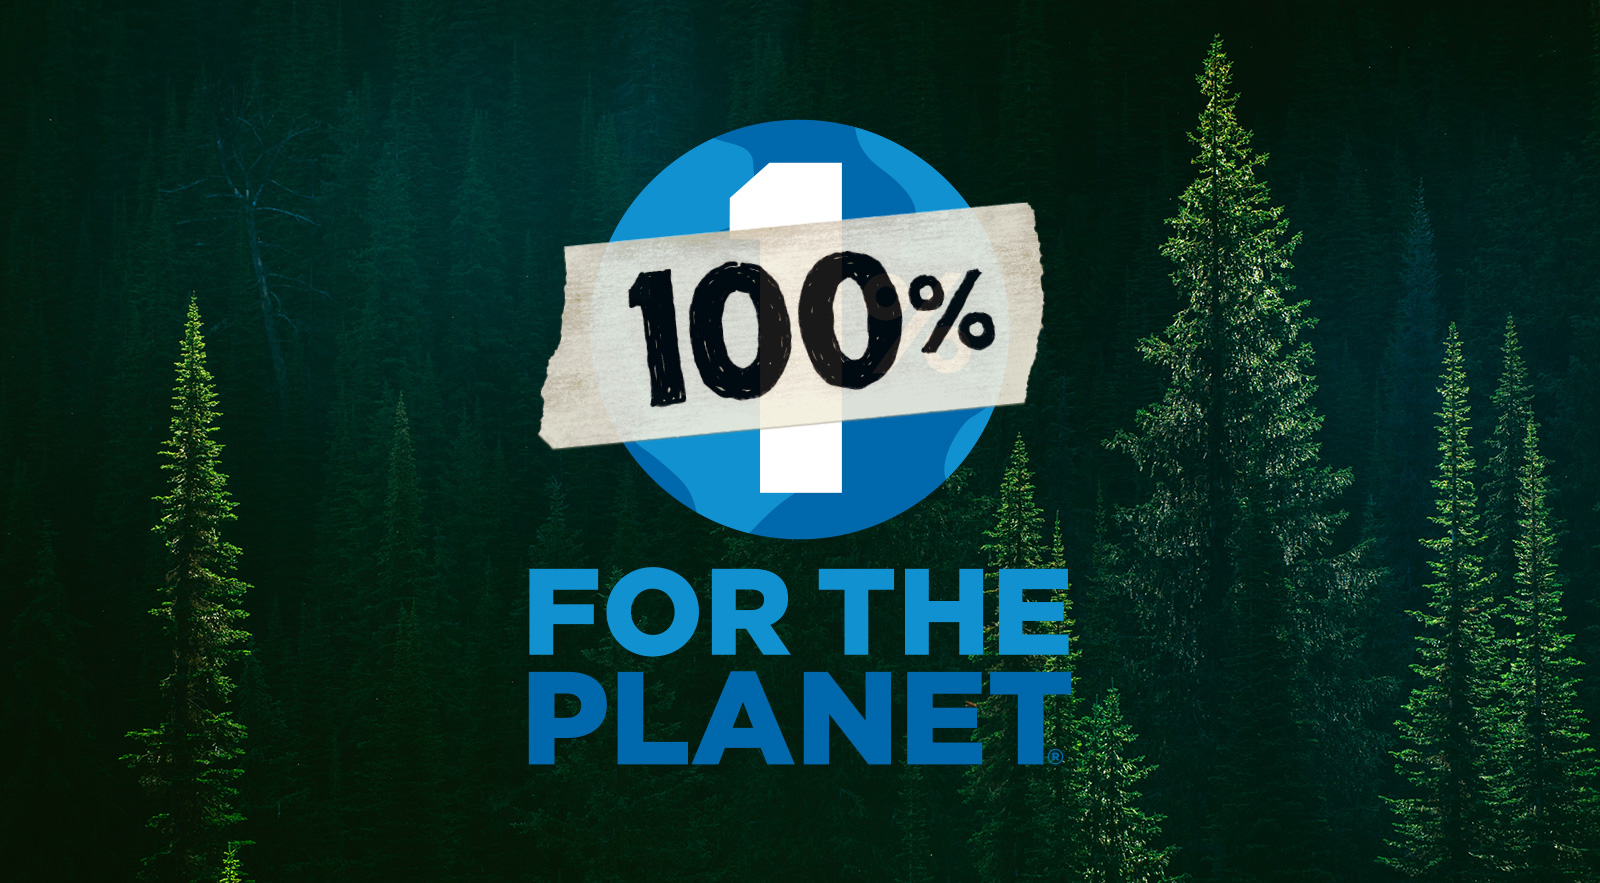 patagonia-hundred-percent-for-the-planet-greendelicious